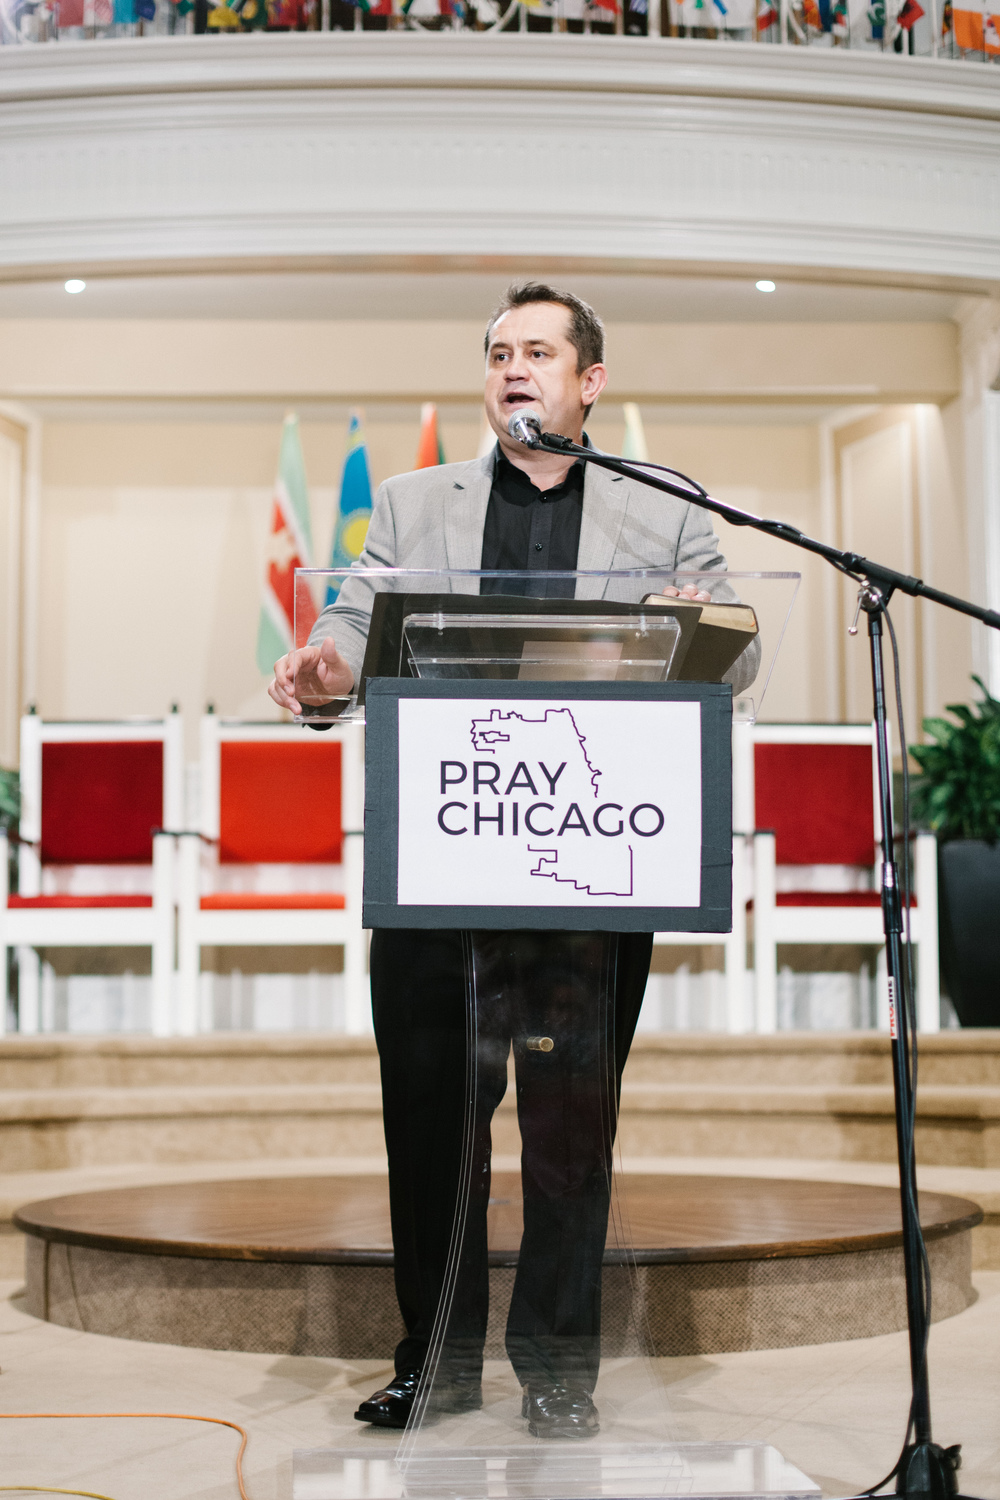 praychicago-12.jpg